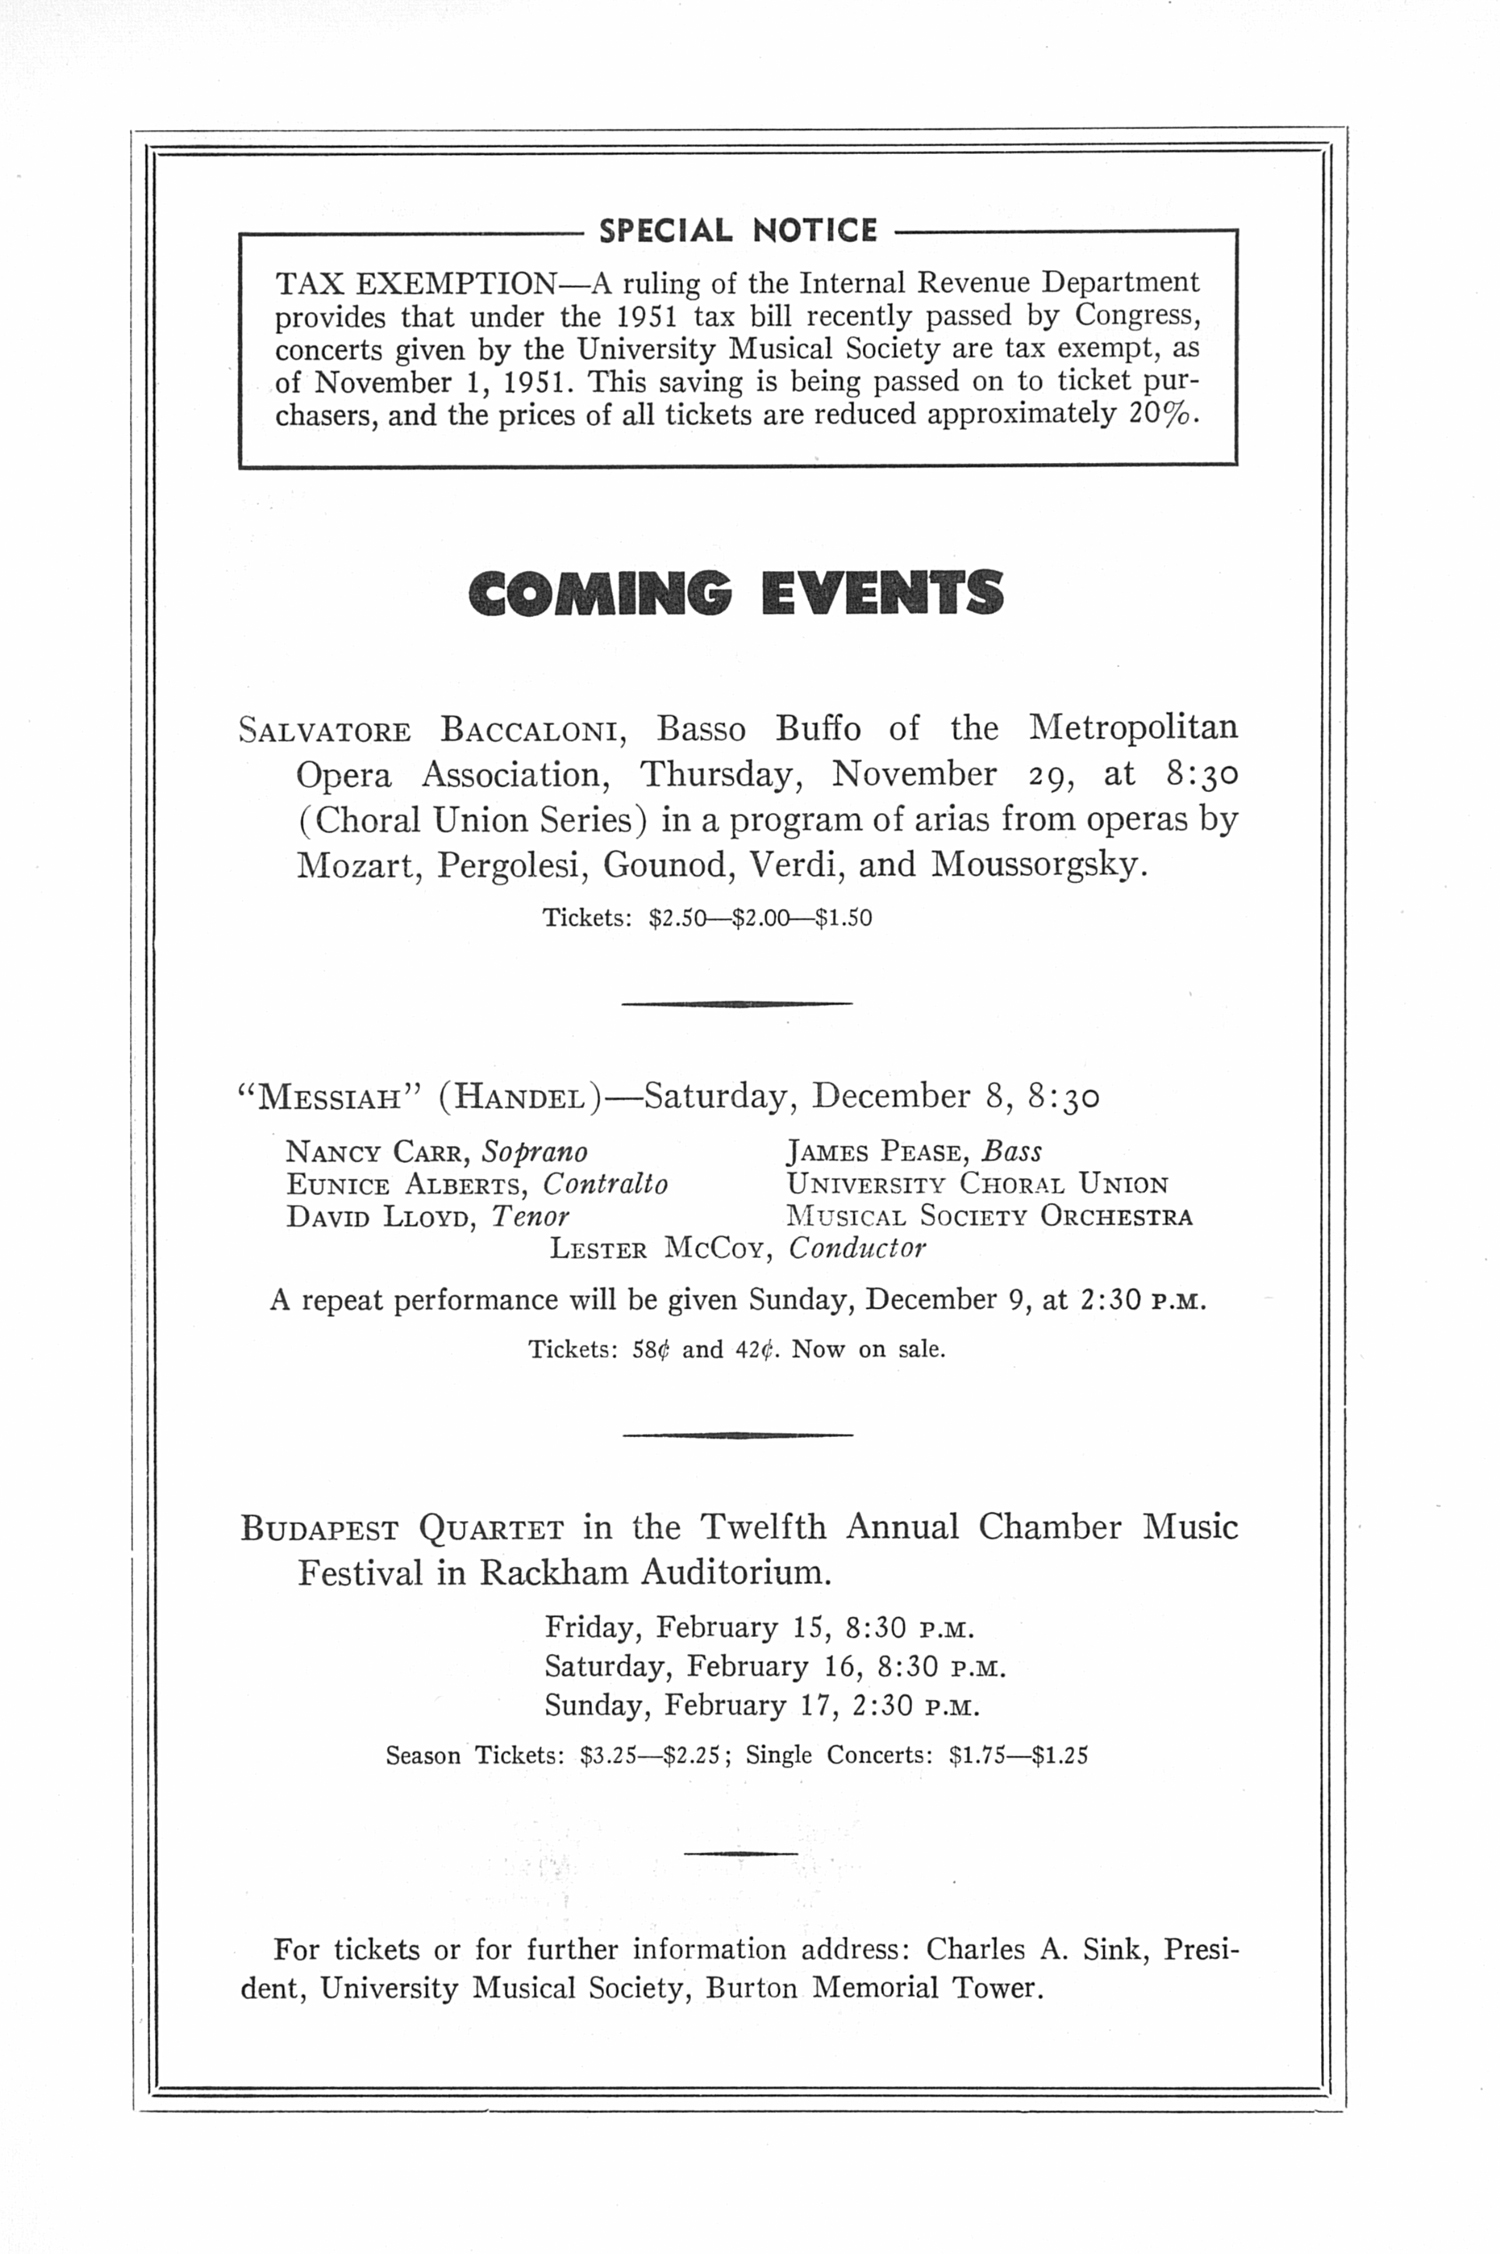 UMS Concert Program, November 20, 1951: Sixth Annual Extra Concert Series -- Leonard Depaur image